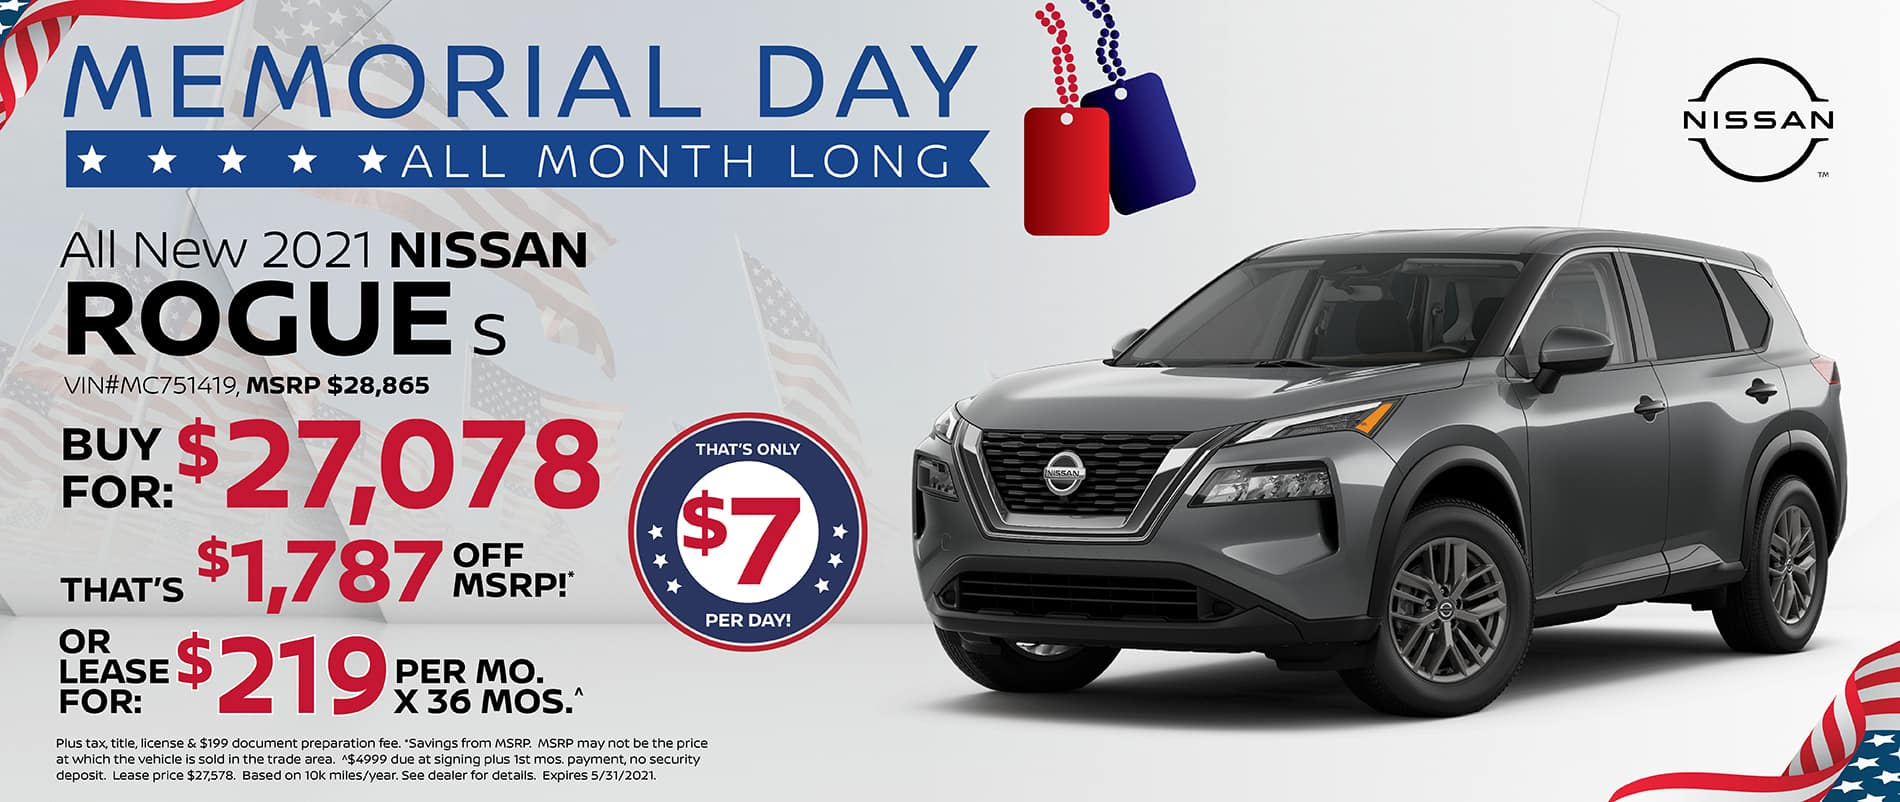 2021 Nissan Rogue Special Offer  Southlake Nissan